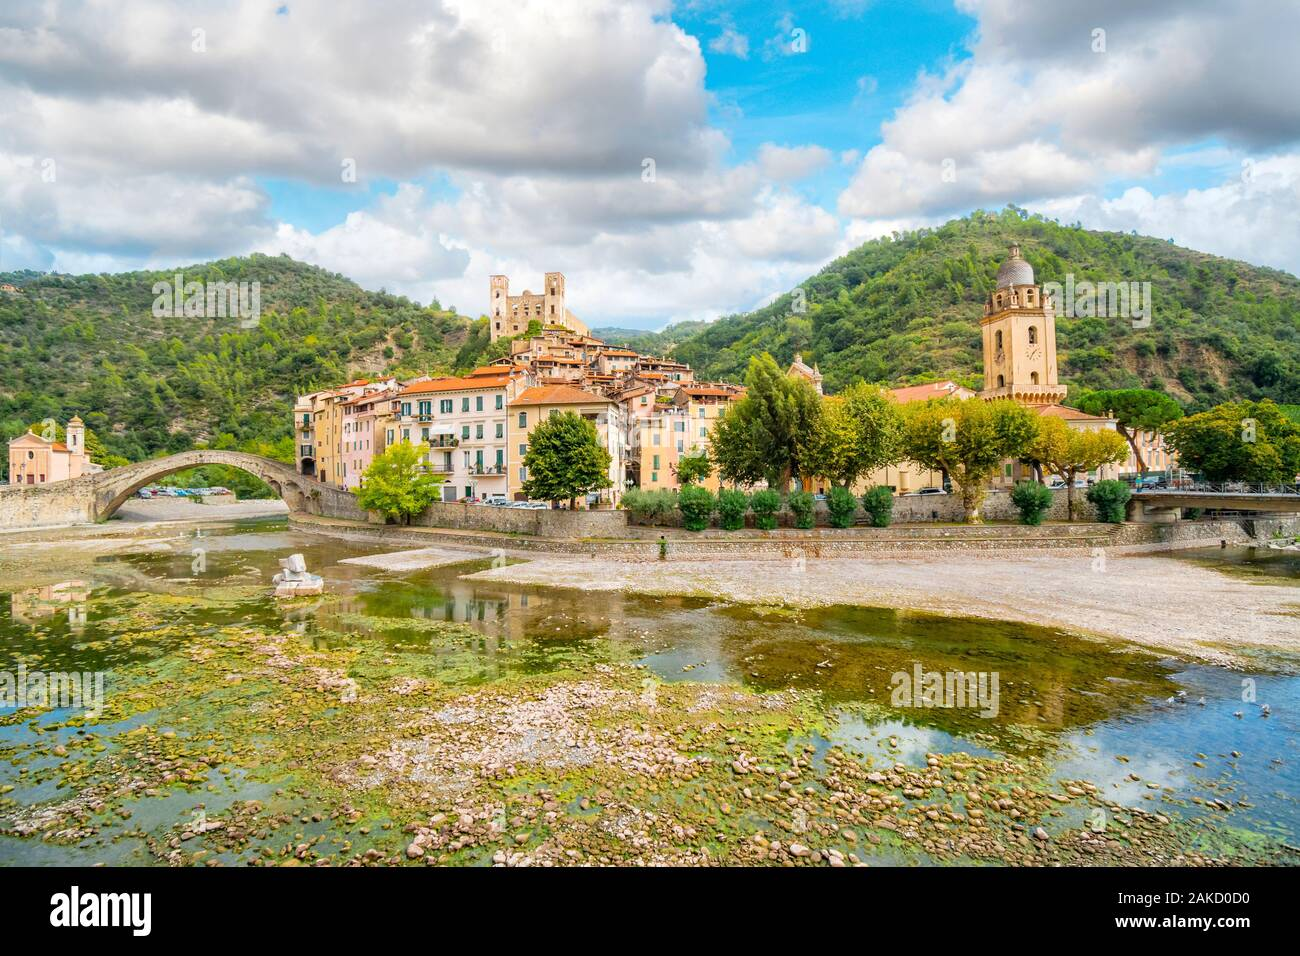 The medieval village of Dolceacqua, Italy, showing the San Fillipo Church, hilltop Castello castle, arched Monet bridge, and the ancient cathedral. Stock Photo